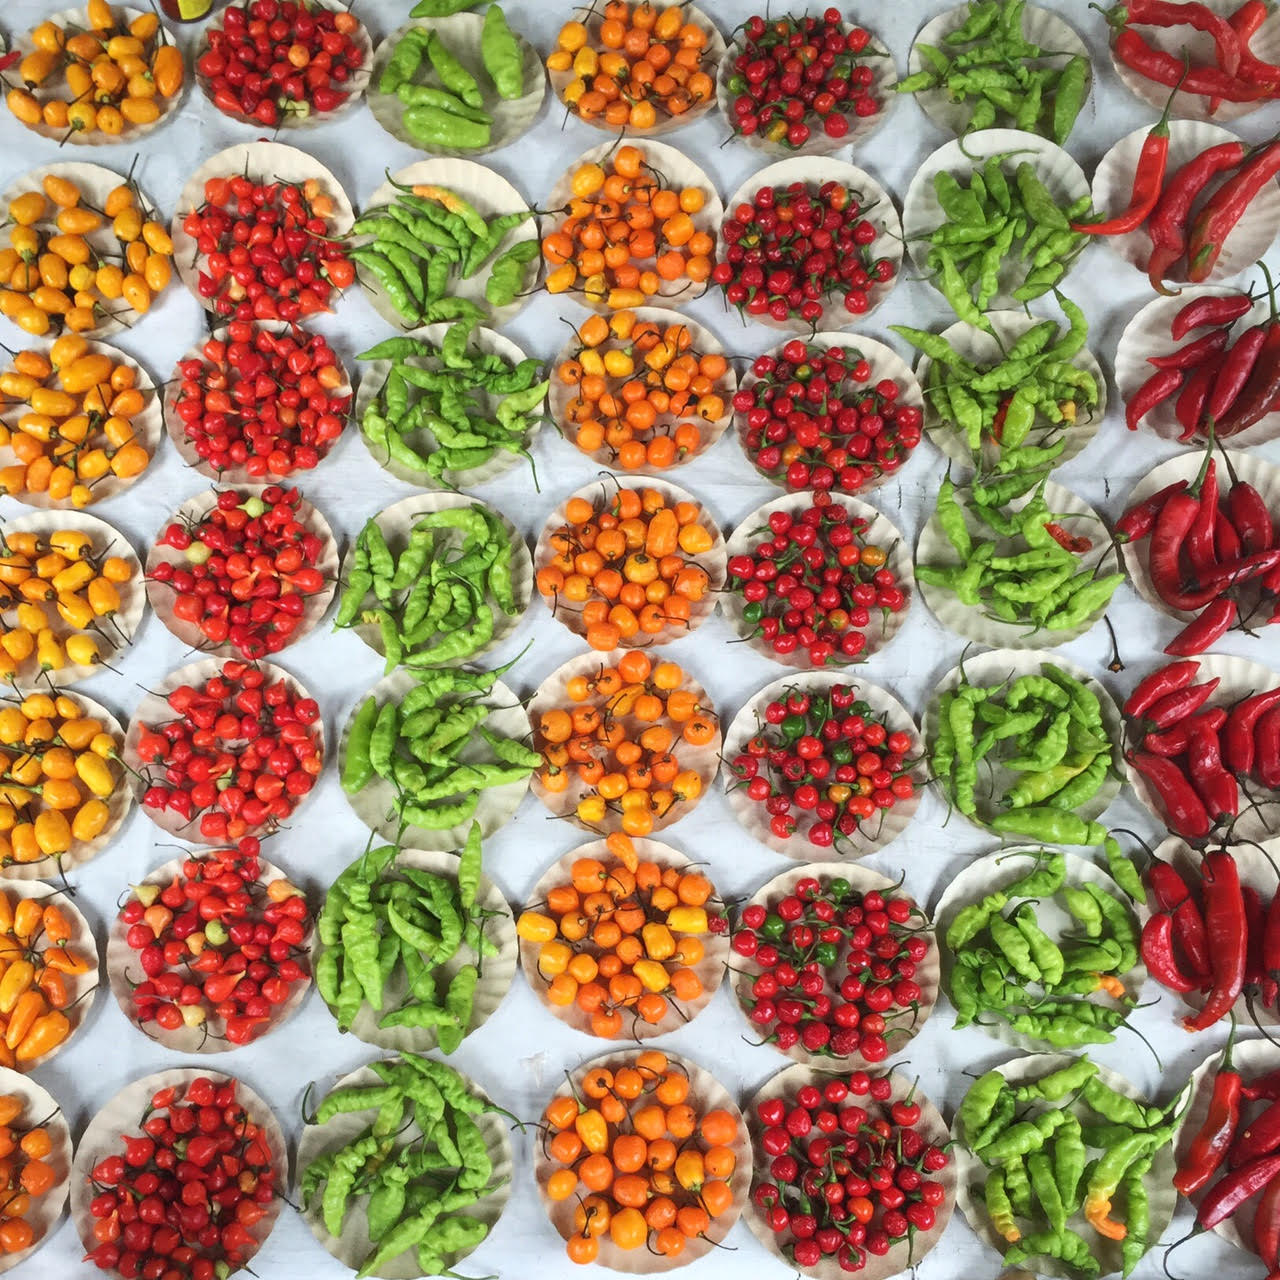 chilli peppers at market